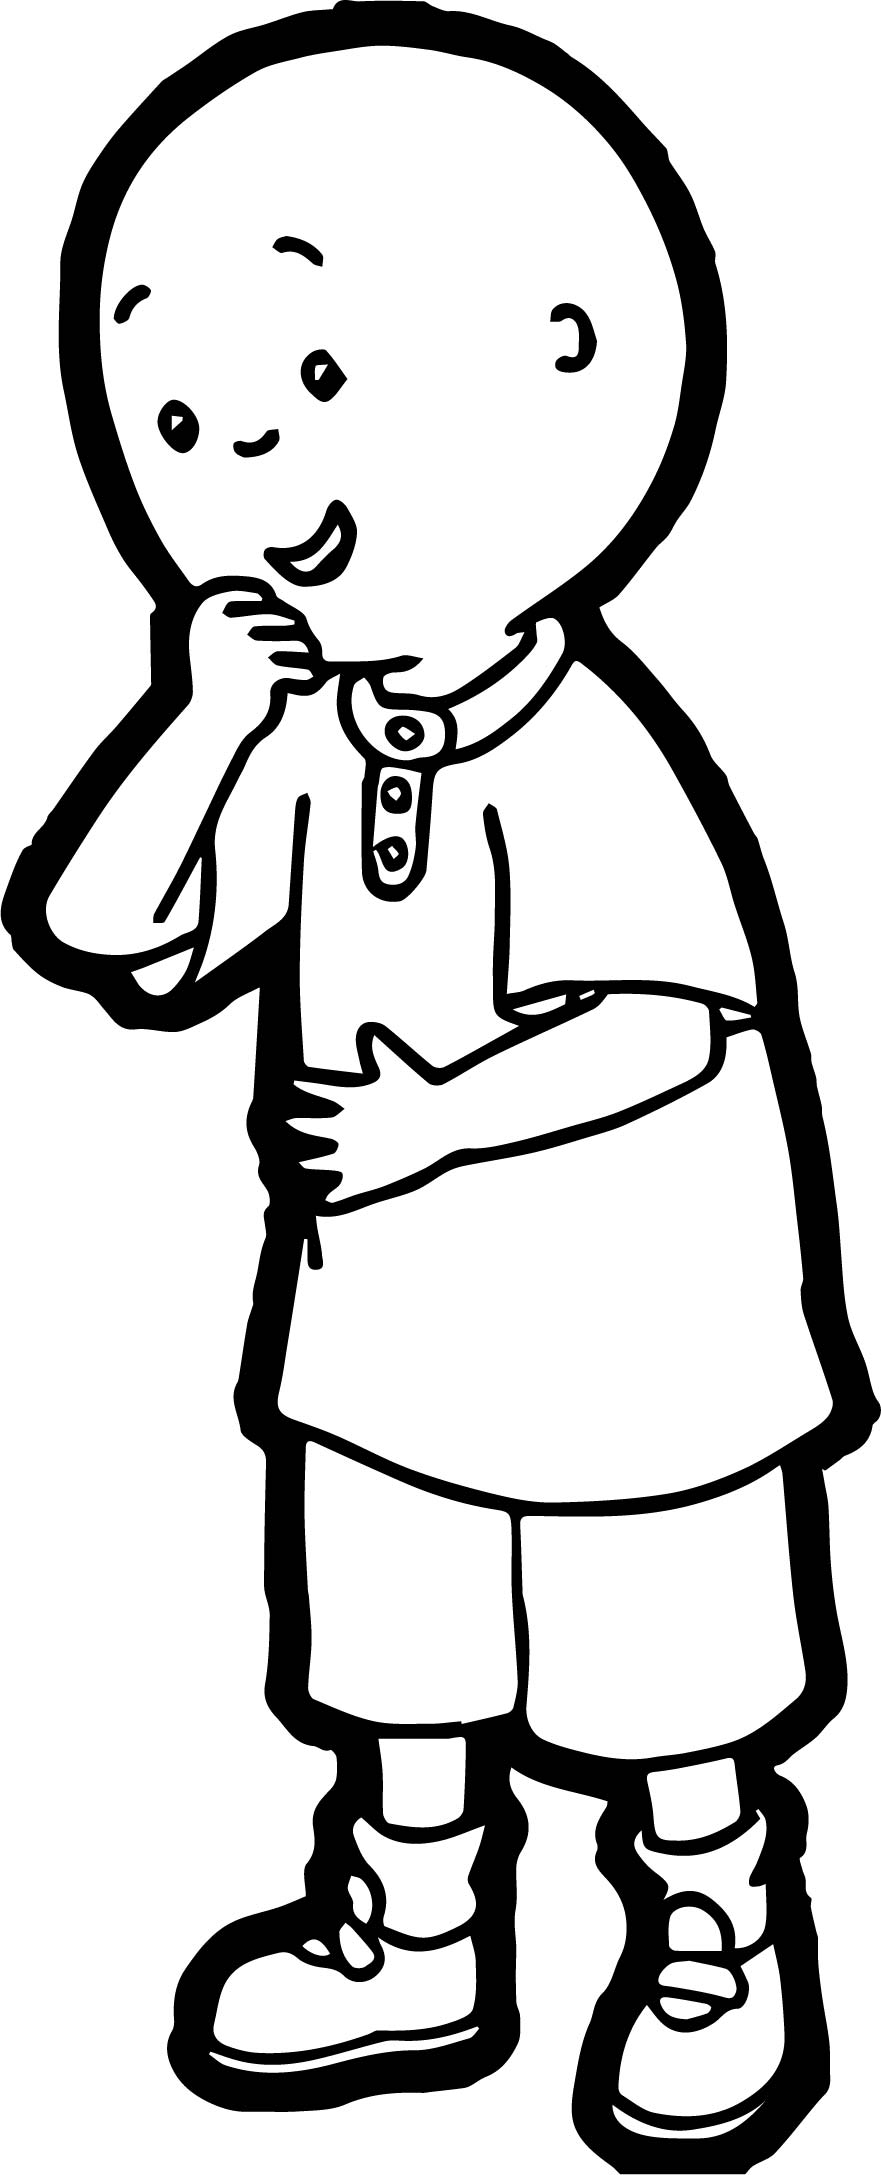 Caillou Comic Coloring Page